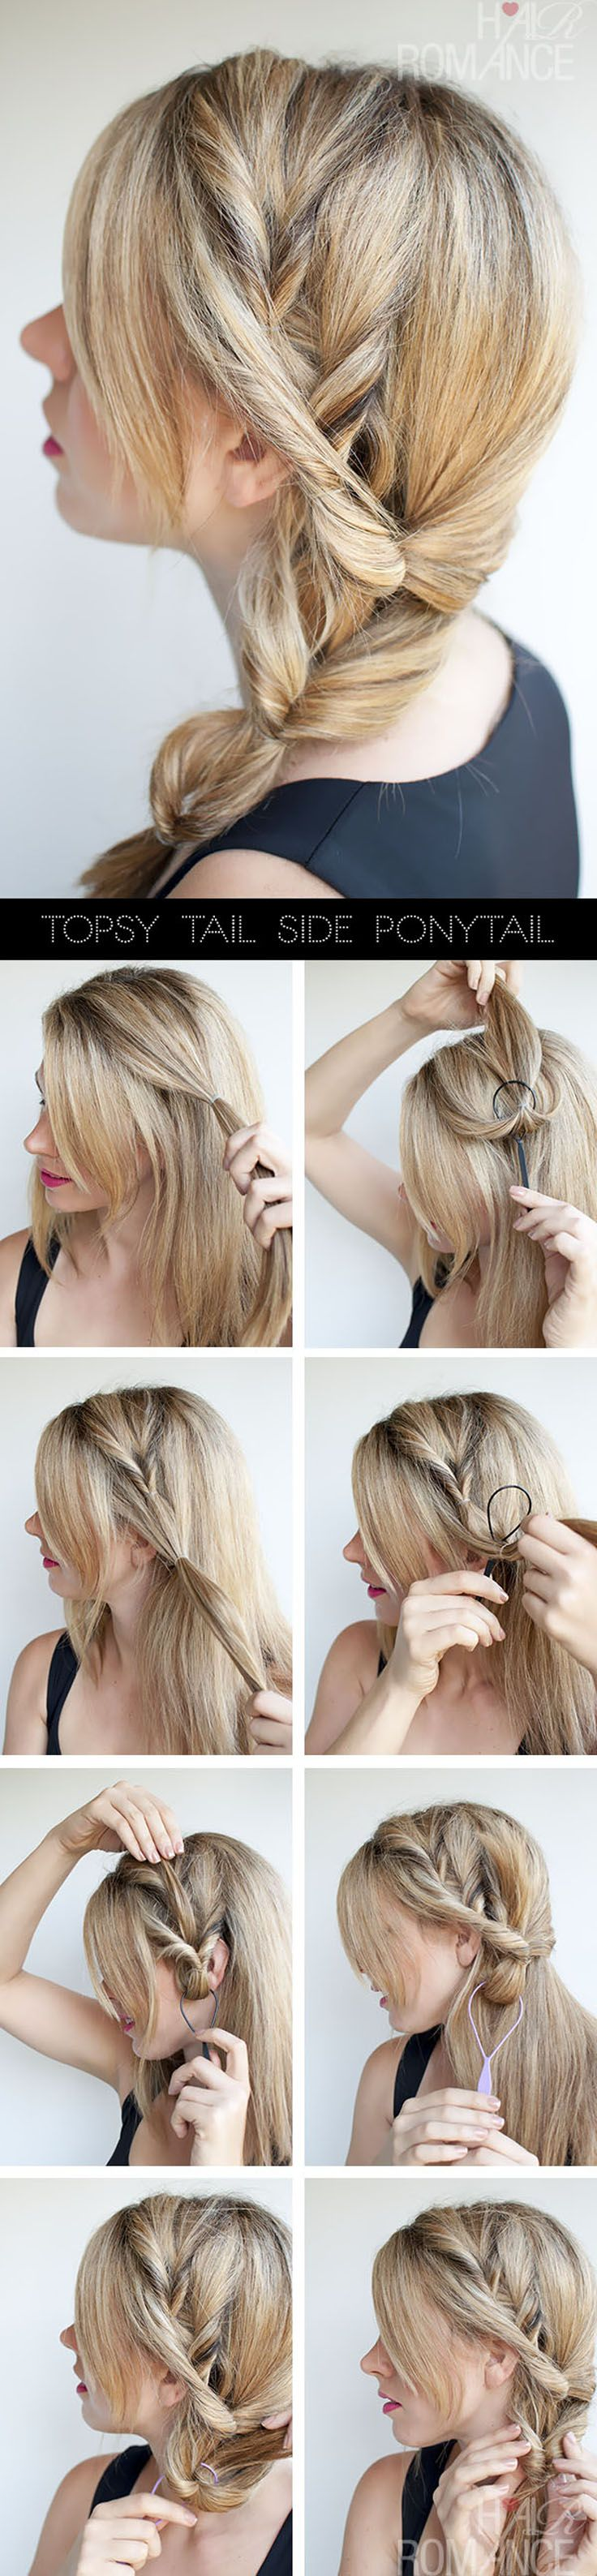 Topsy Tail Side Ponytail Hair Tutorial